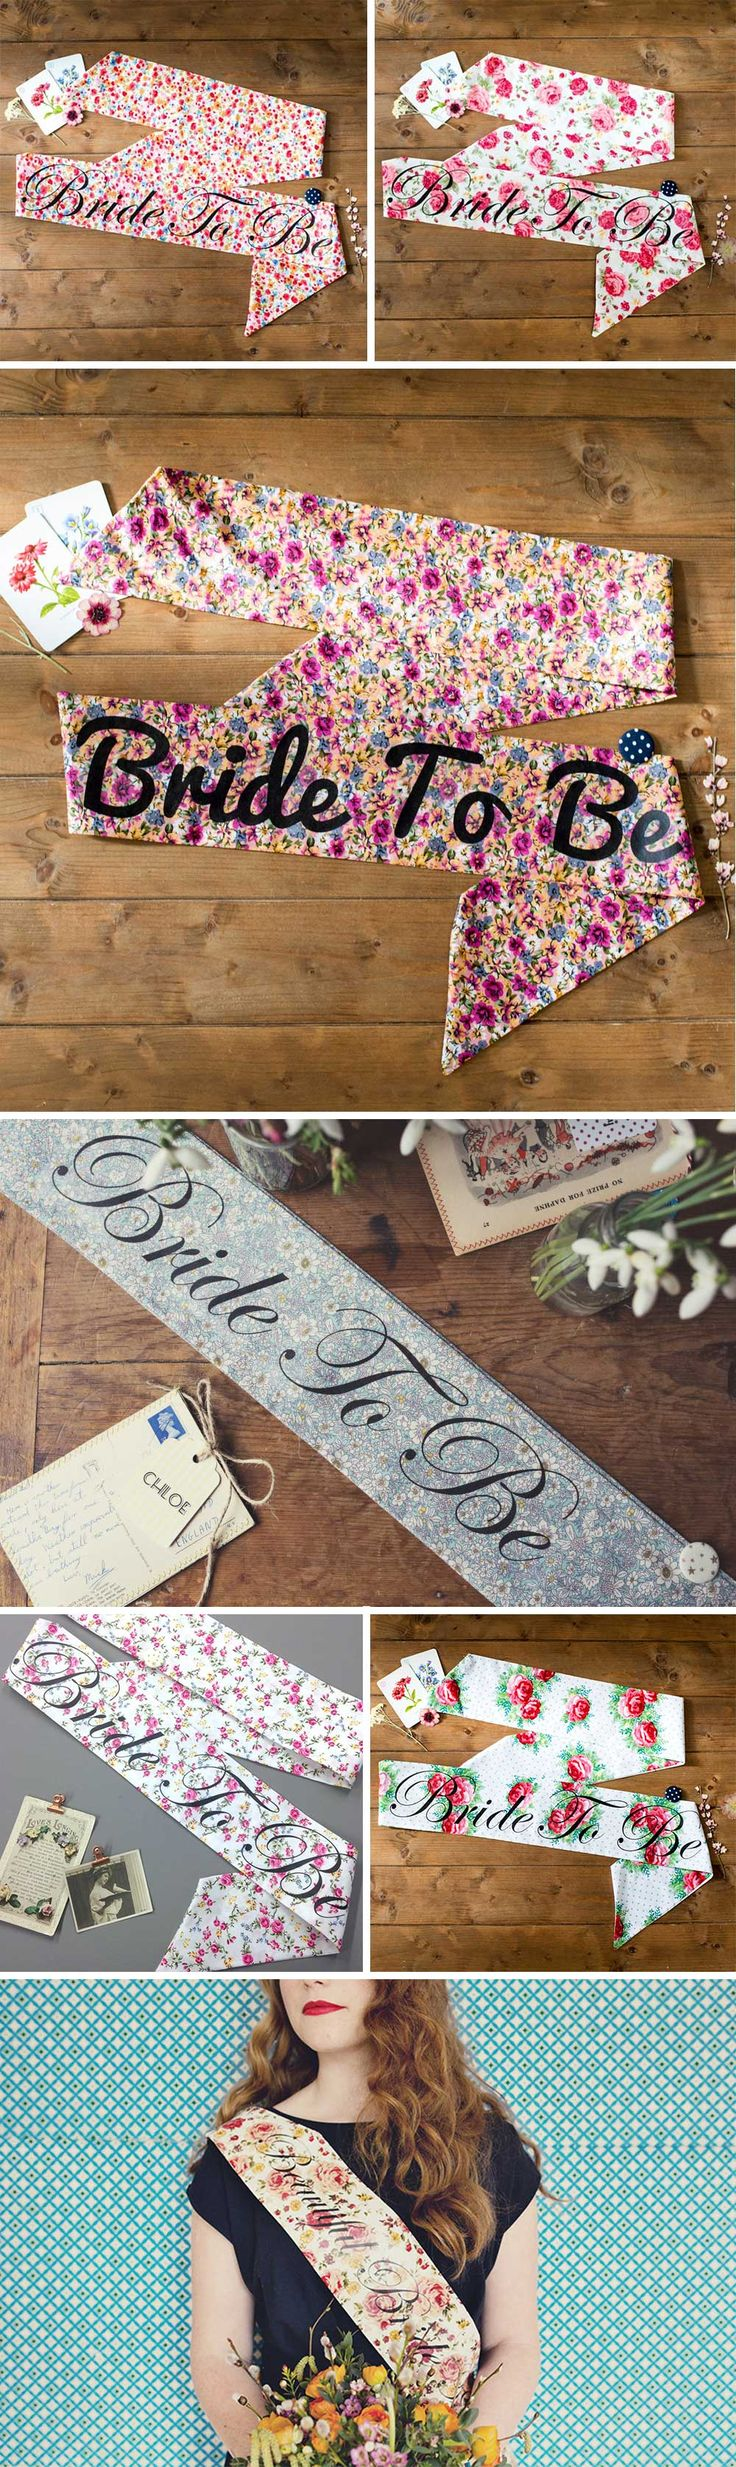 If you're planning a vintage hen party, you absolutely need one of these gorgeous hen party sashes made from fabulous vintage-looking floral fabric. You can choose what text you want on the sash – pick from 'Bride to Be', 'Beautiful Bride to Be', 'Bridesmaid', 'Maid of Honour' or 'Blushing Bride'. You can also have a personalised message for an additional cost.